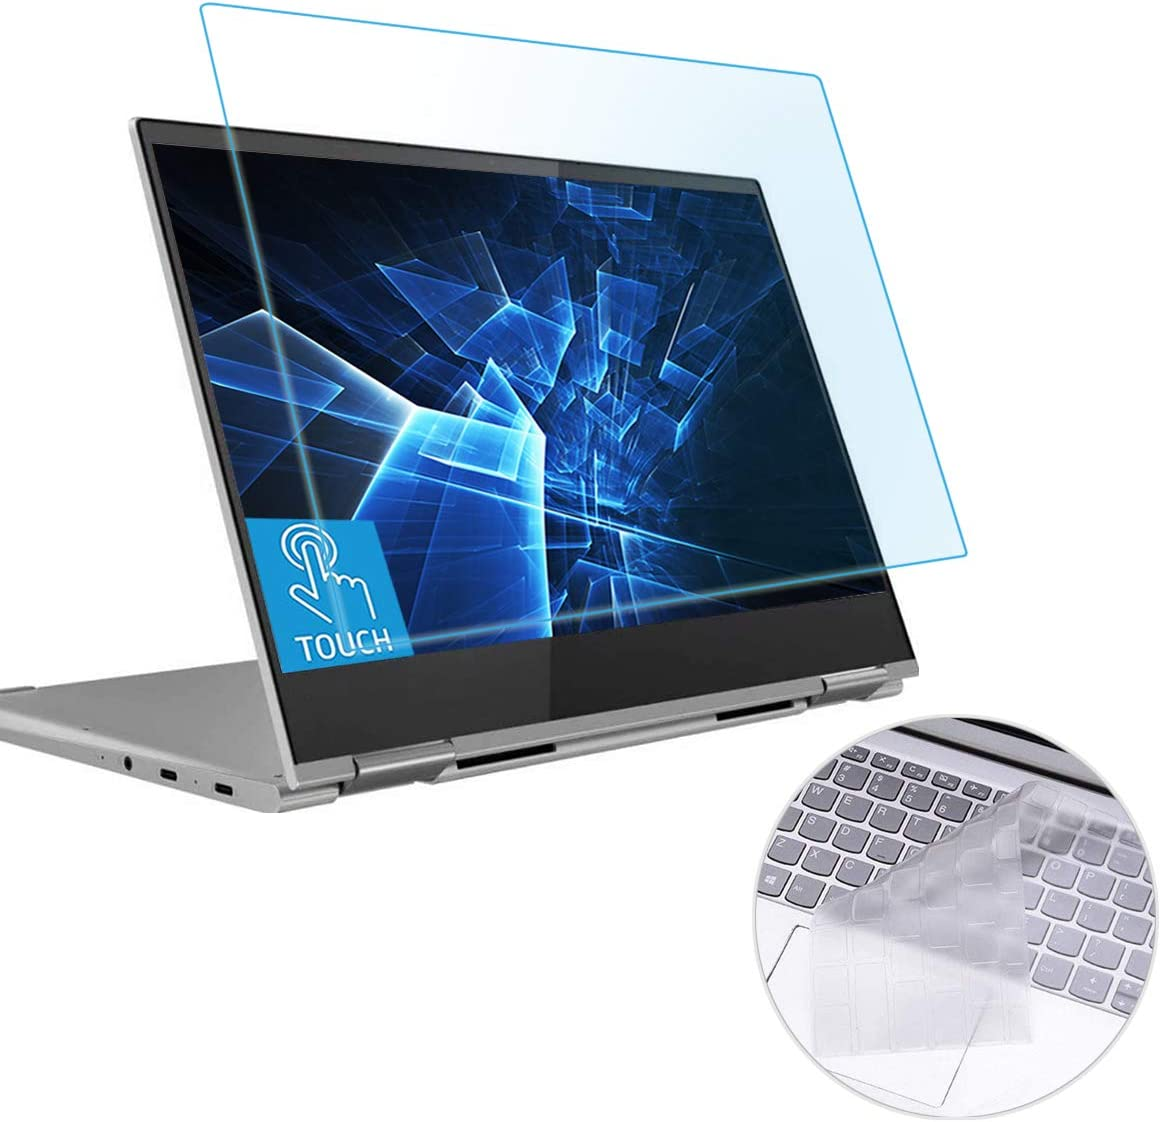 "MUBUY Anti Blue Light Glare Screen Protector Fit Lenovo Yoga C740 14"" Touchscreen & Keyboard Cover Ultra Thin TPU, Eyes Protection Filter Reduces Eye Strain Help You Sleep Better, Anti Fingerprint"